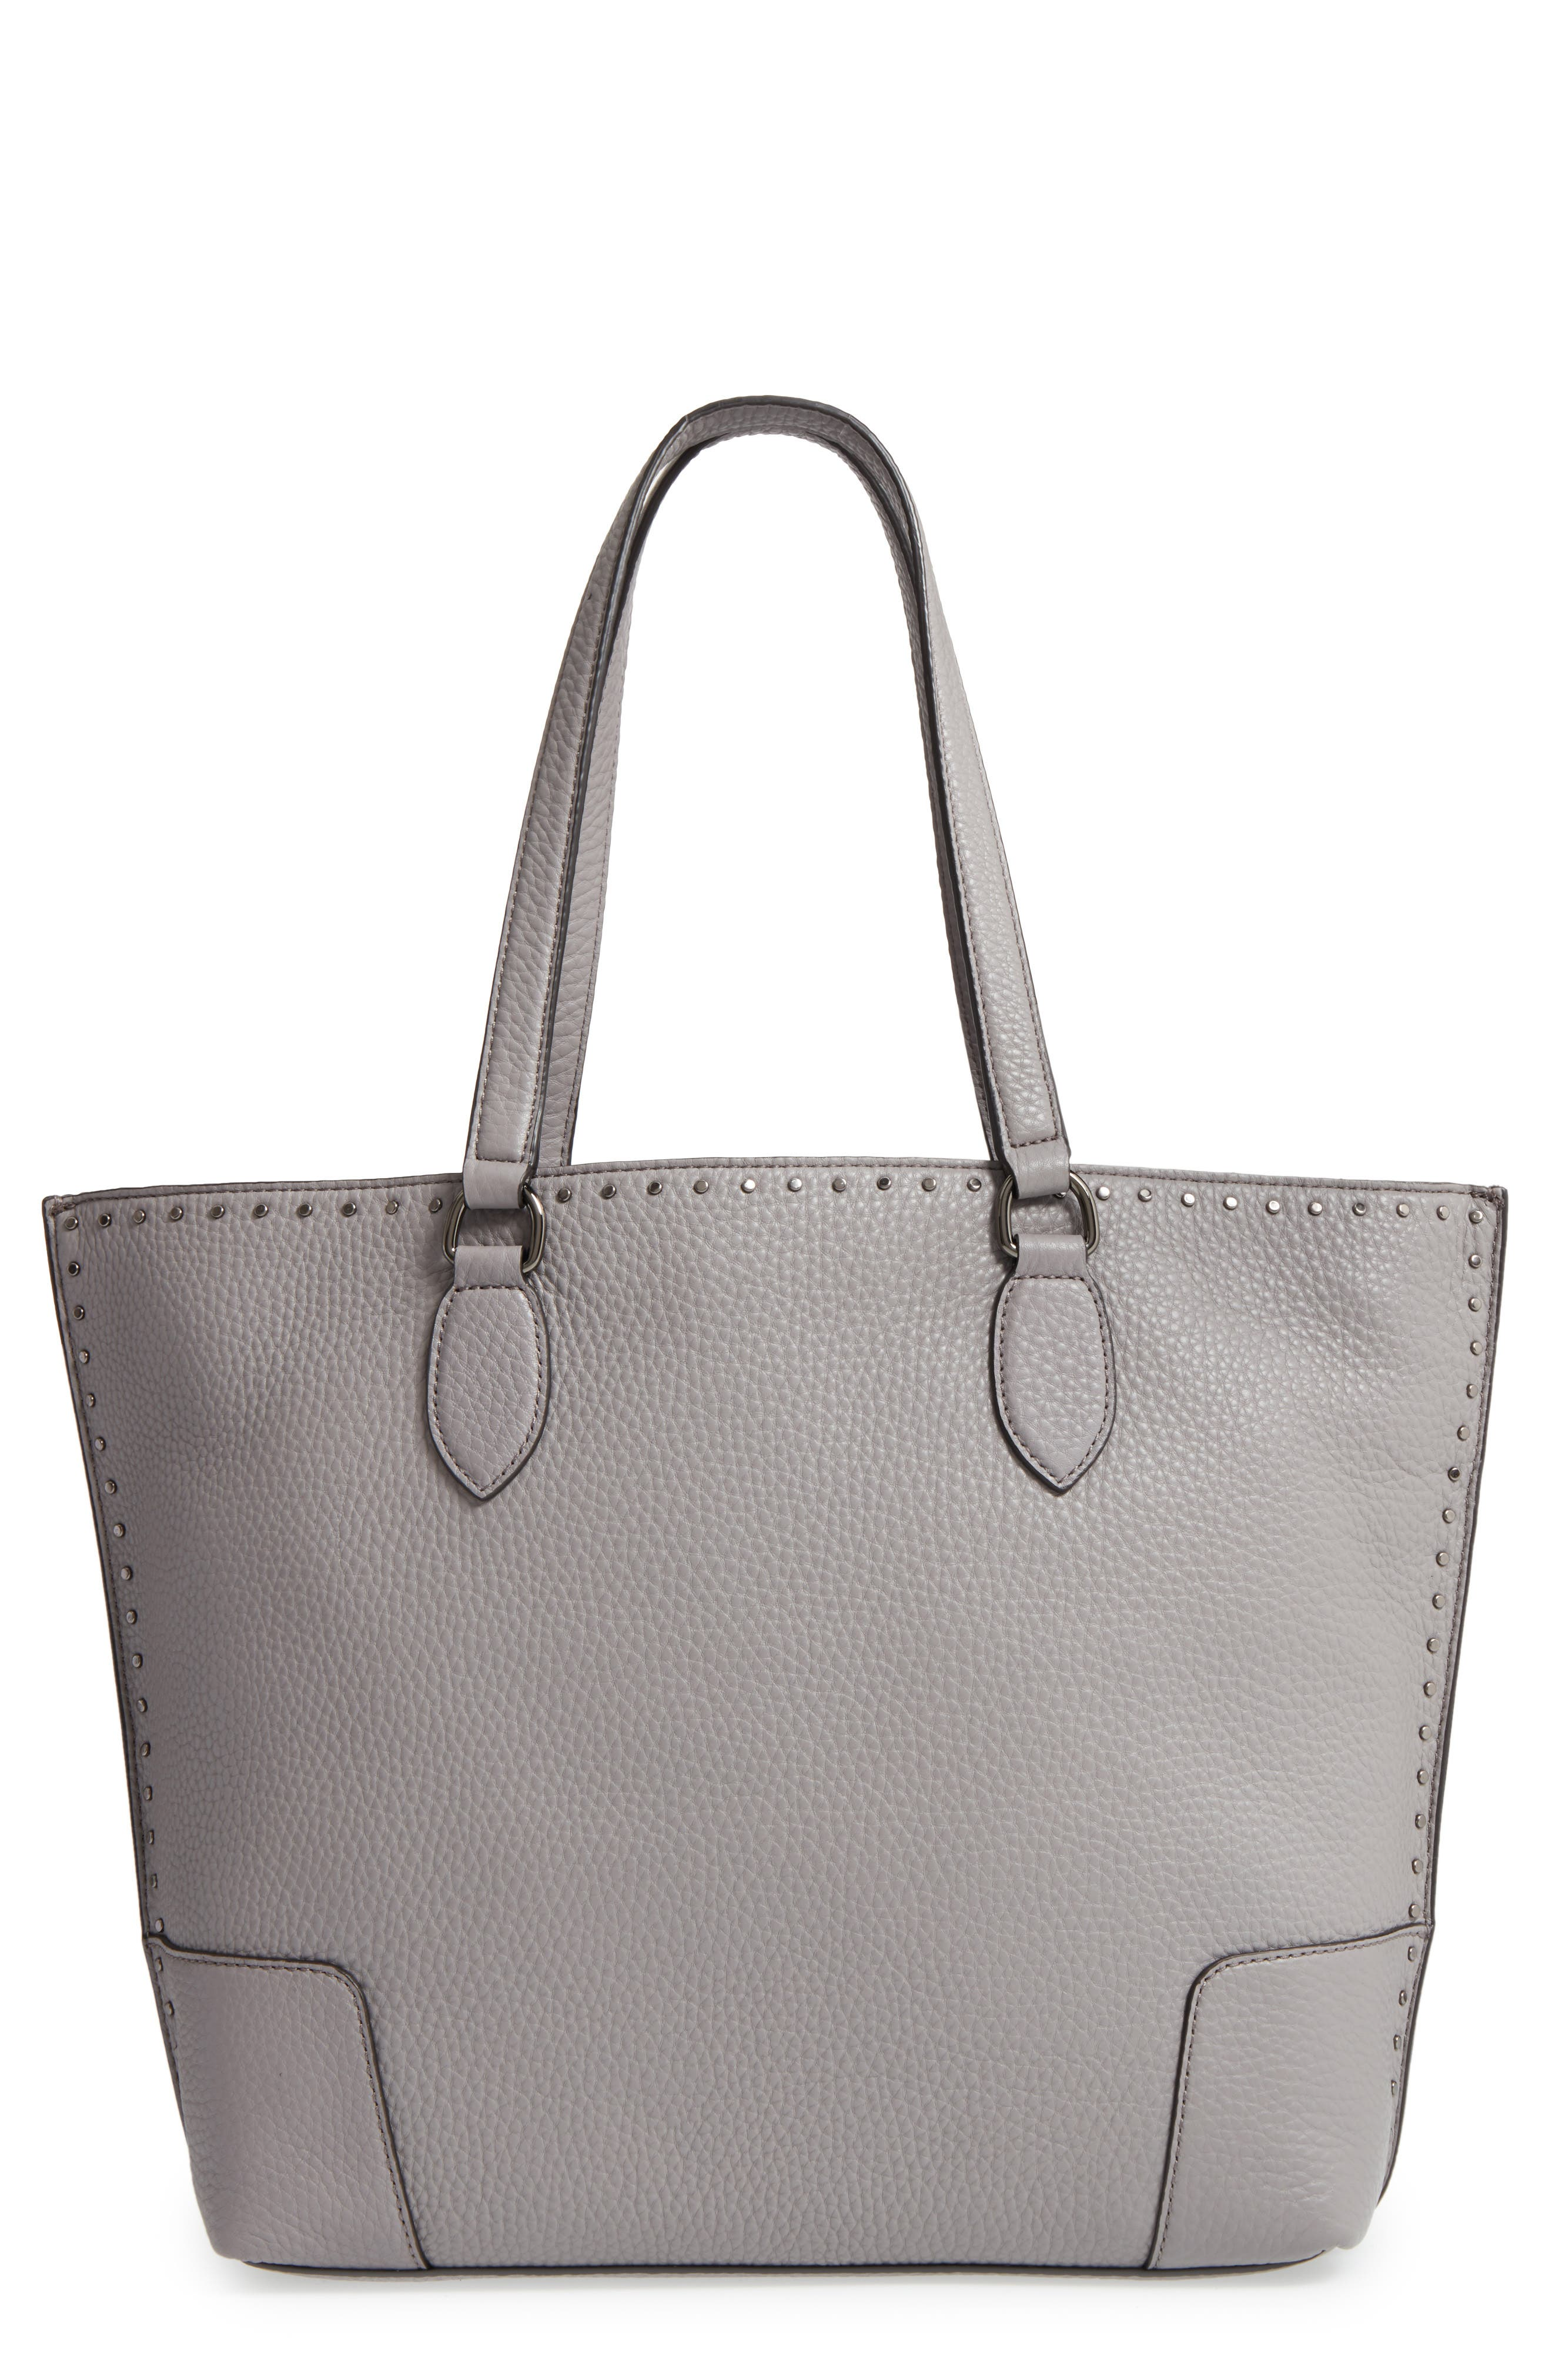 Alternate Image 1 Selected - Rebecca Minkoff Moonwalking Leather Tote